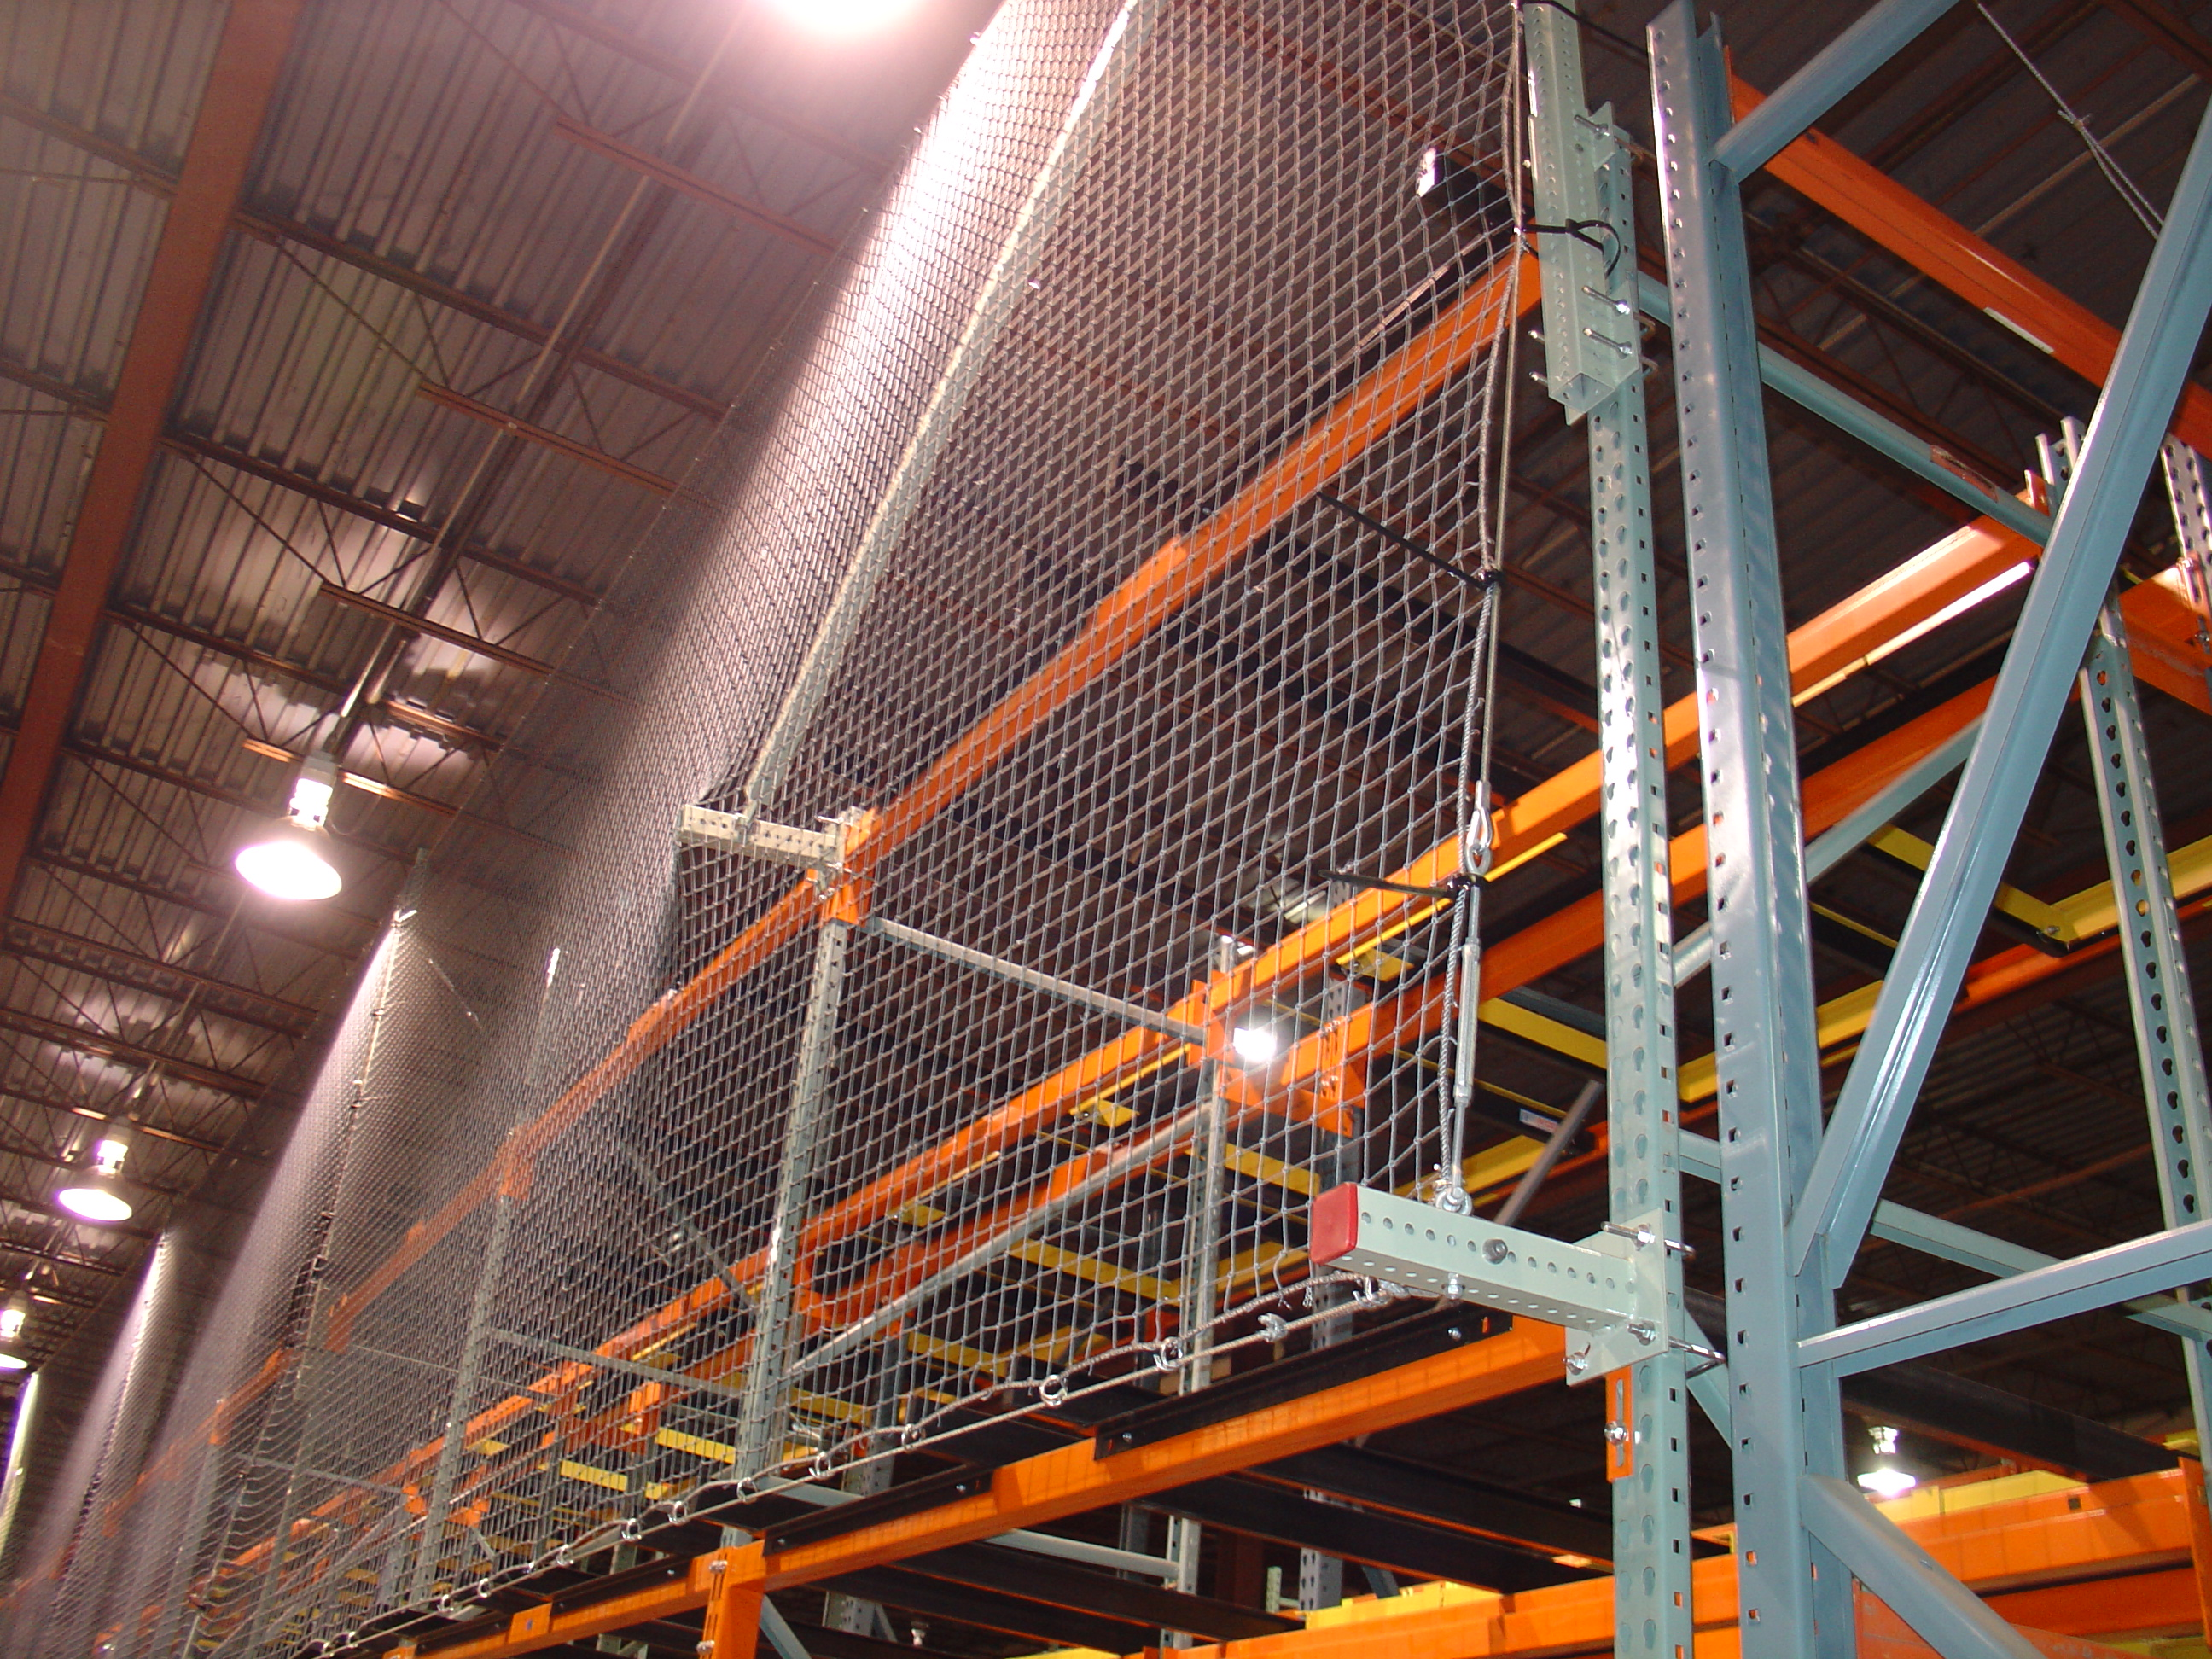 enclosure enclosures cages lockersusa rack pallet nj